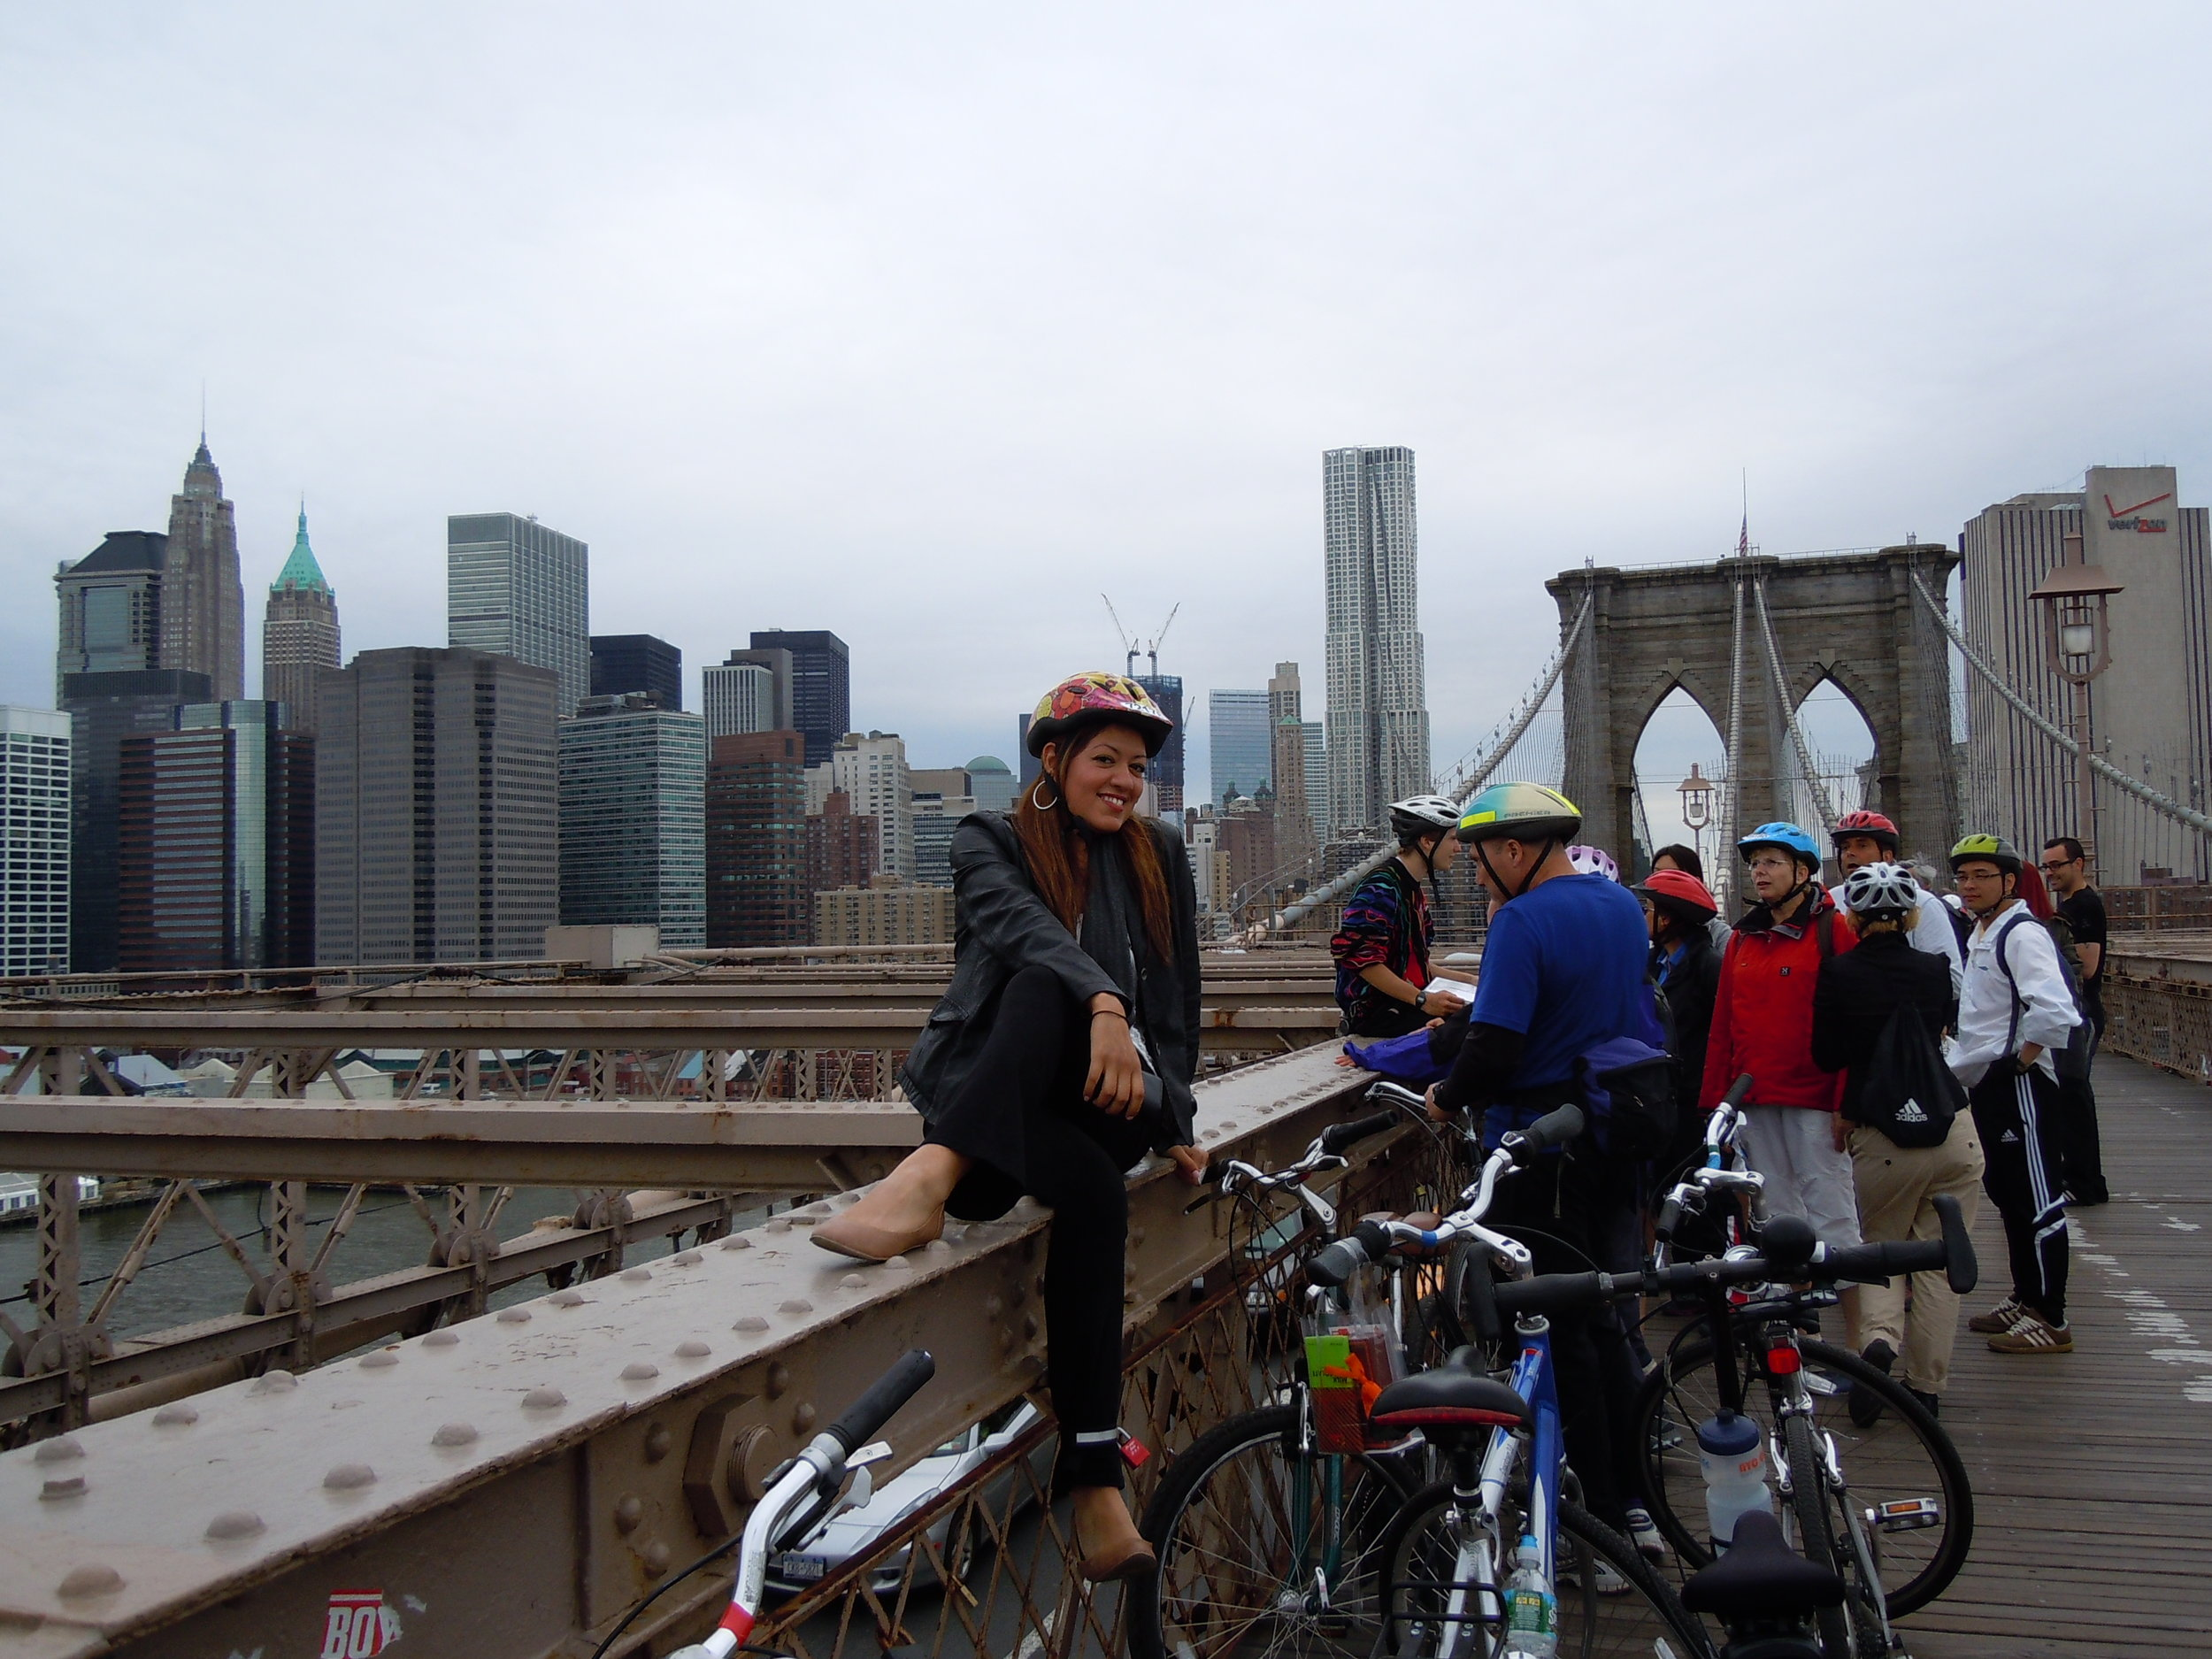 Brooklyn Bridge bike tour 2011